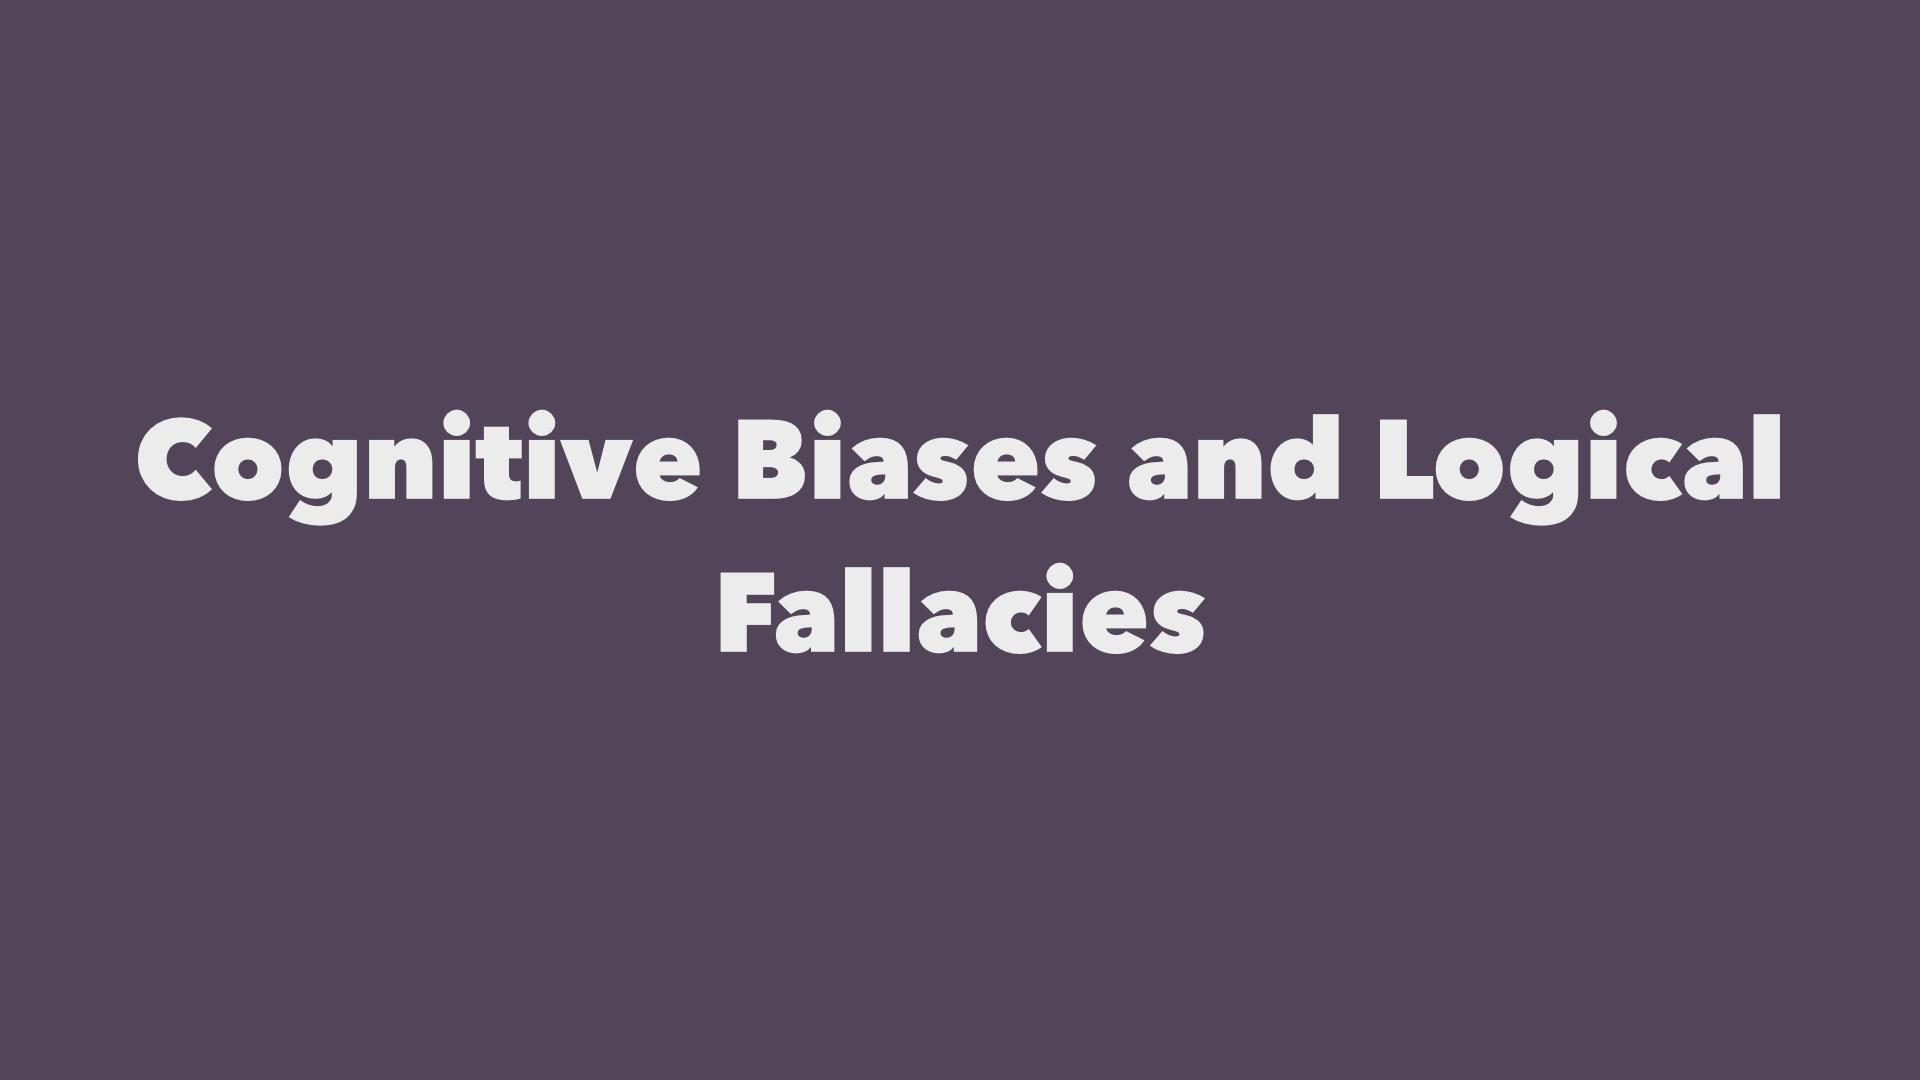 And logical fallacies...